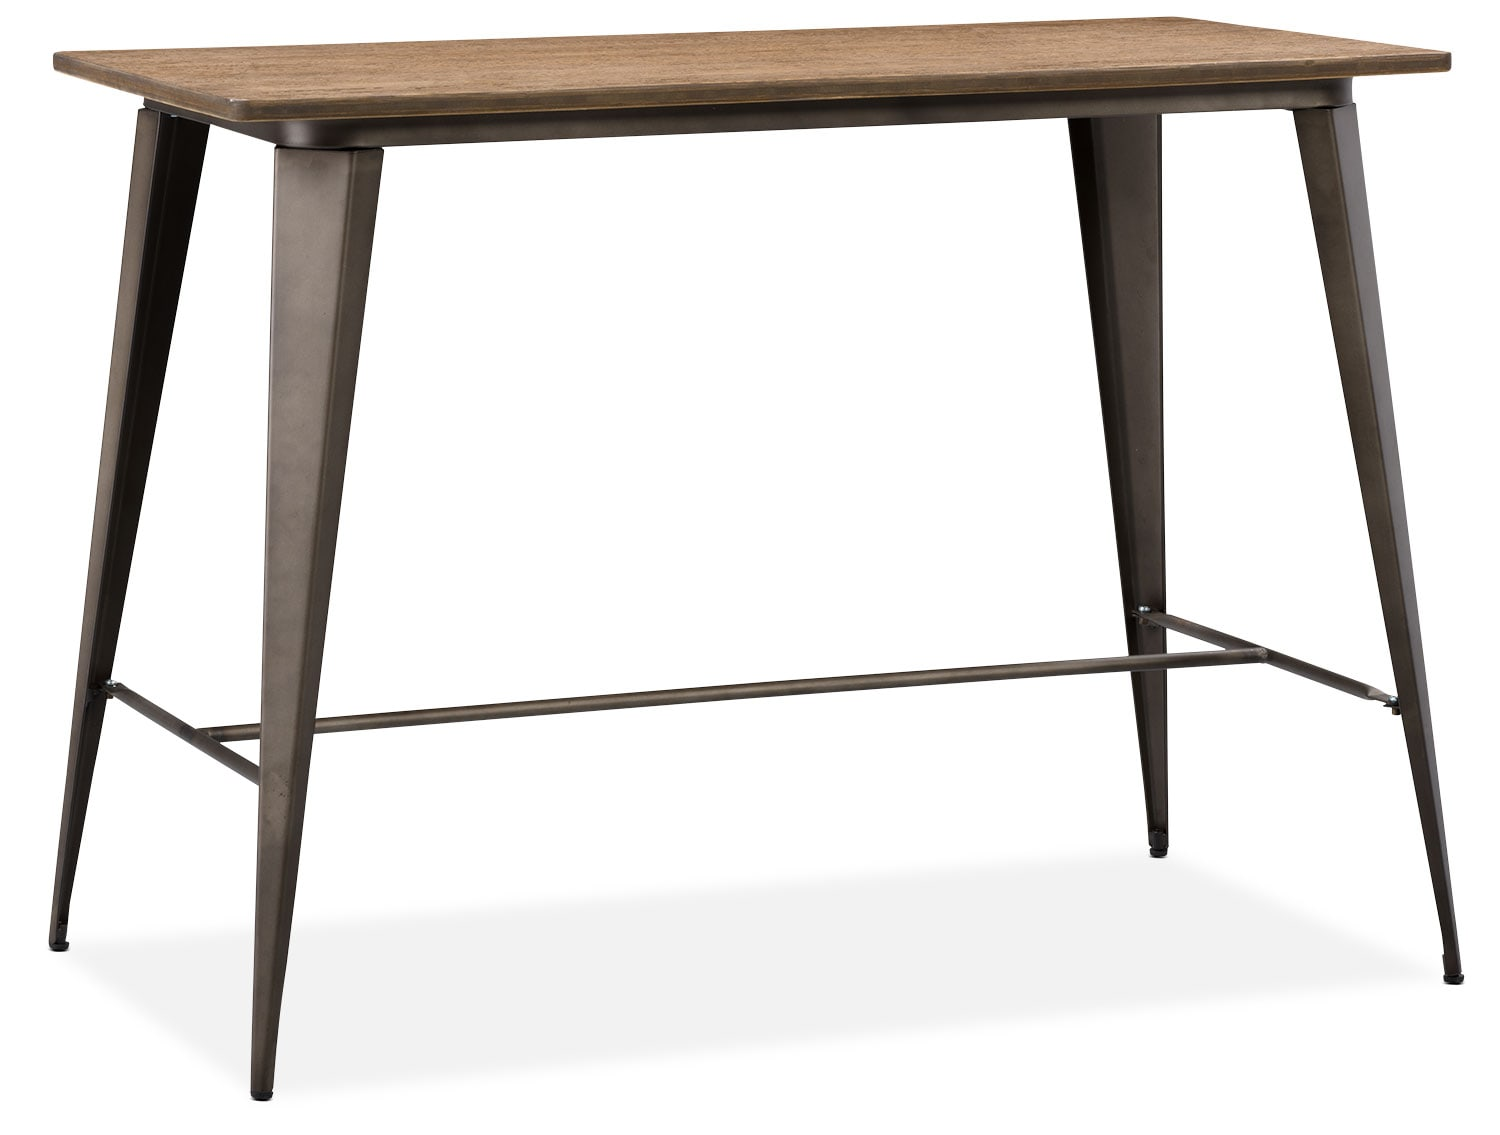 Dining Room Furniture - Peyton Counter-Height Dining Table